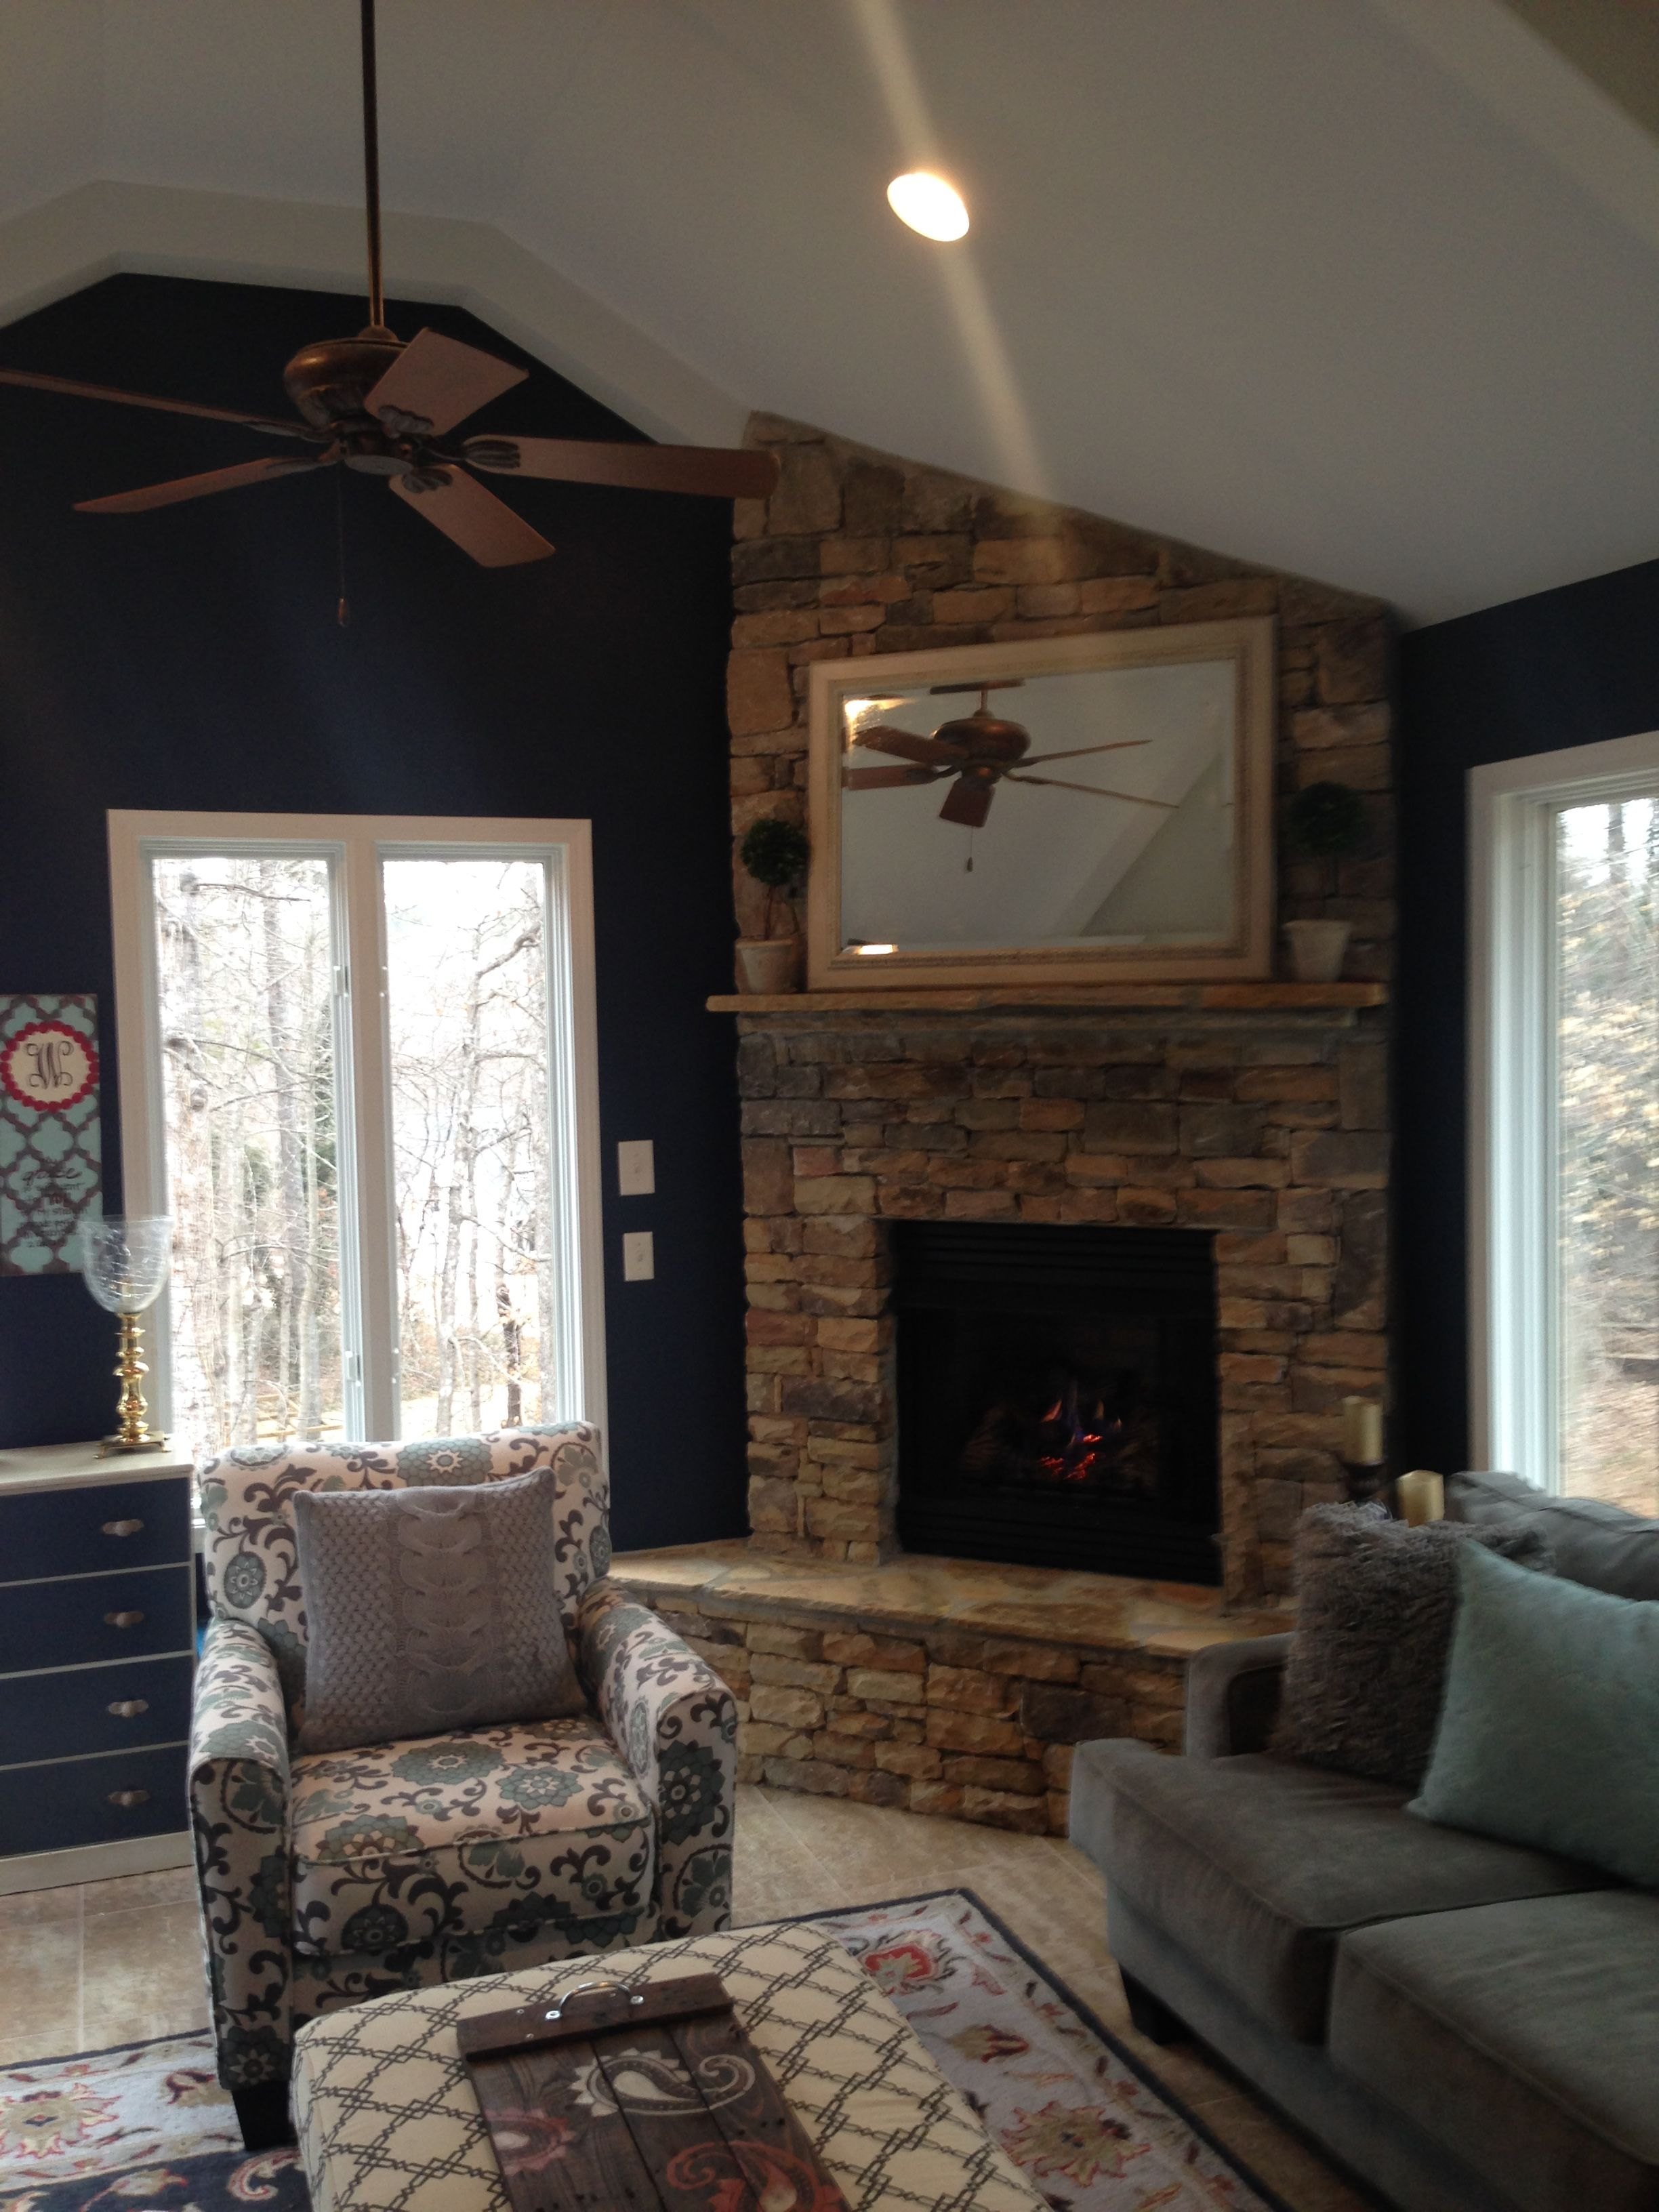 After photo sherwin williams duration matte naval 6244 - Sherwin williams interior paint finishes ...